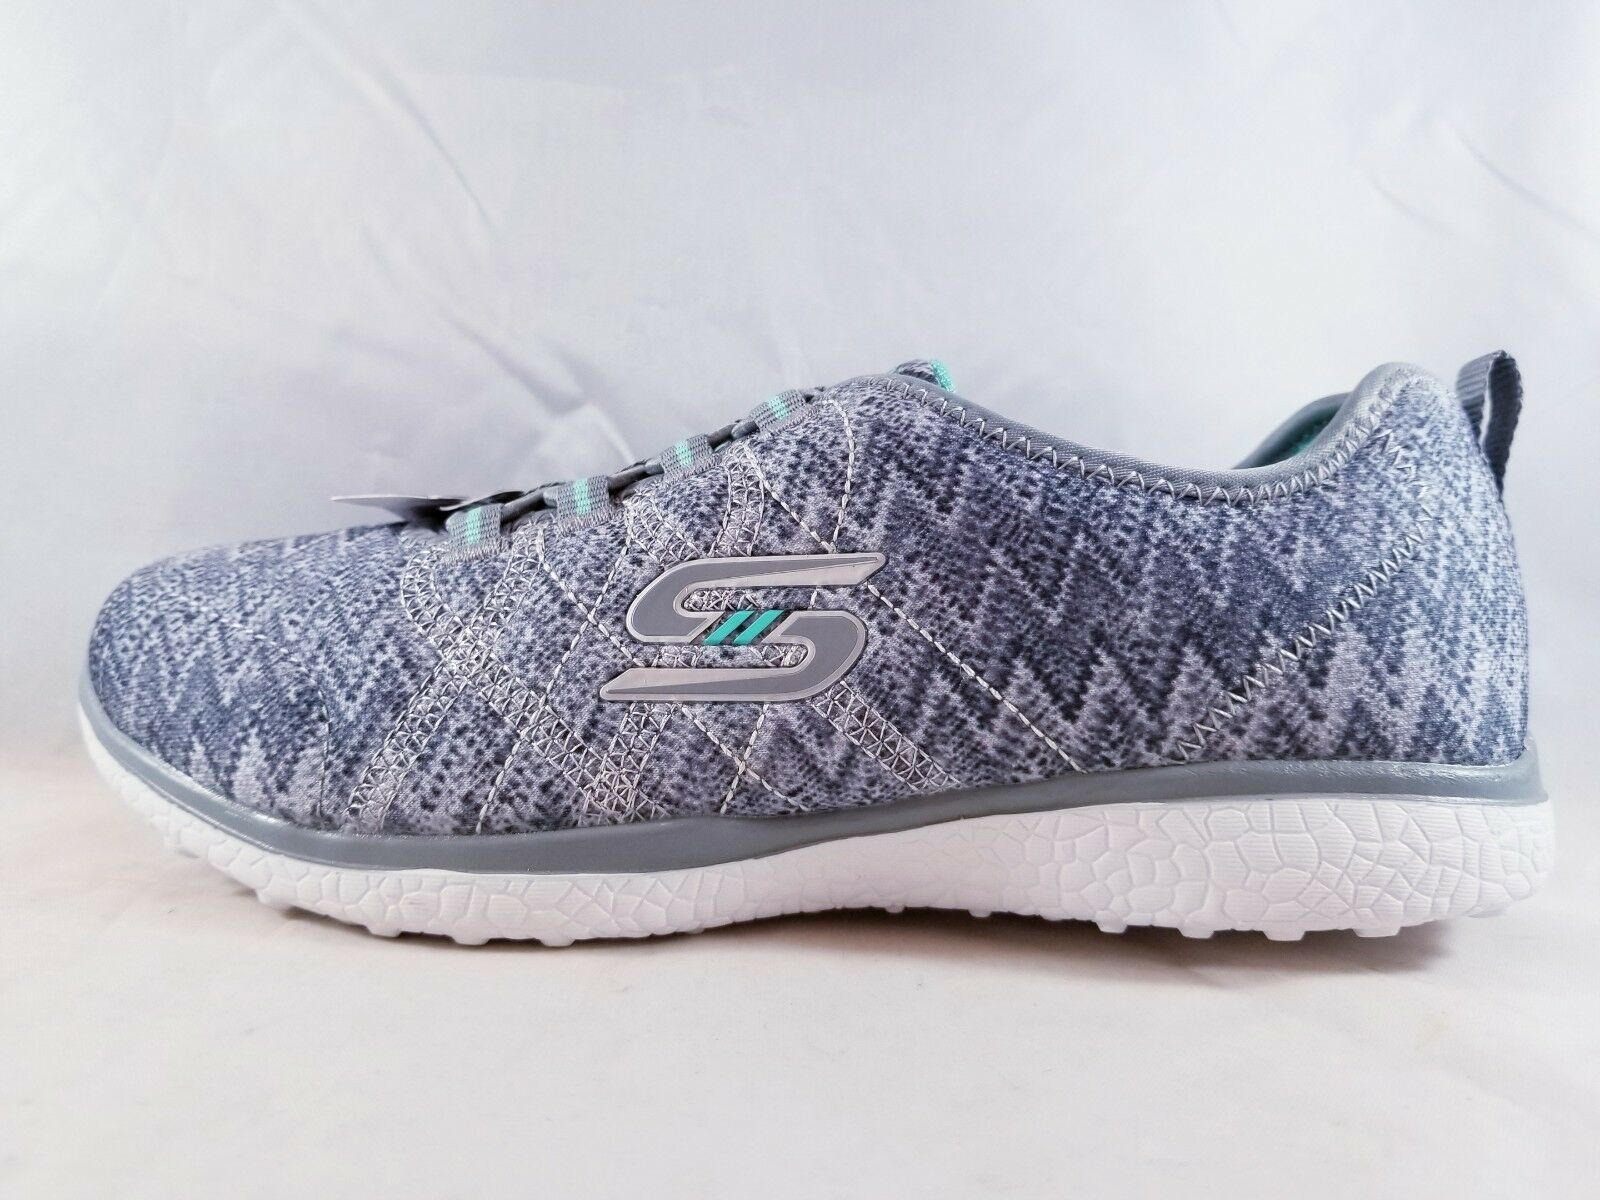 Skechers Microburst Fluctuate Women's Running Shoe 23304/GRY Size 5.5